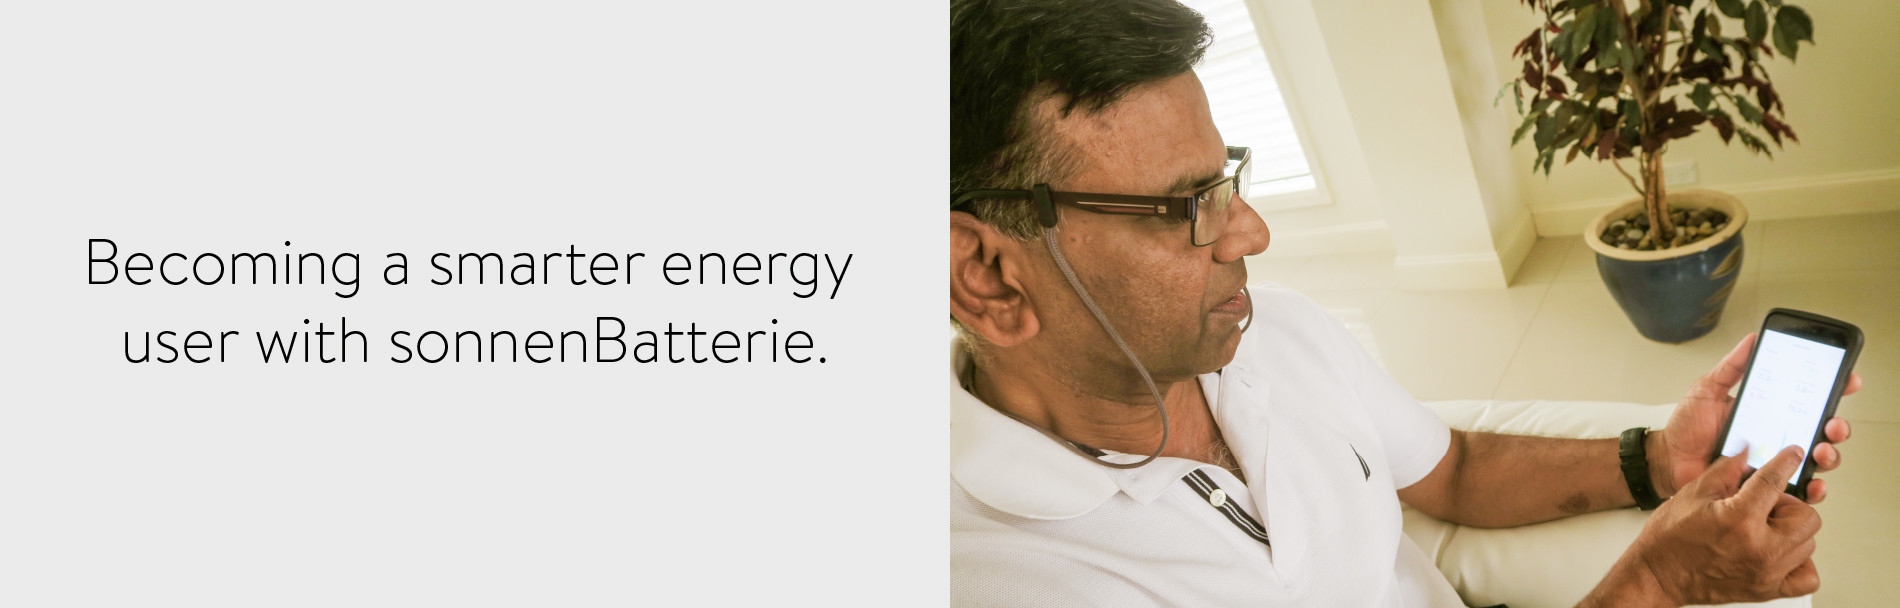 become a smarter energy user with a sonnenBatterie